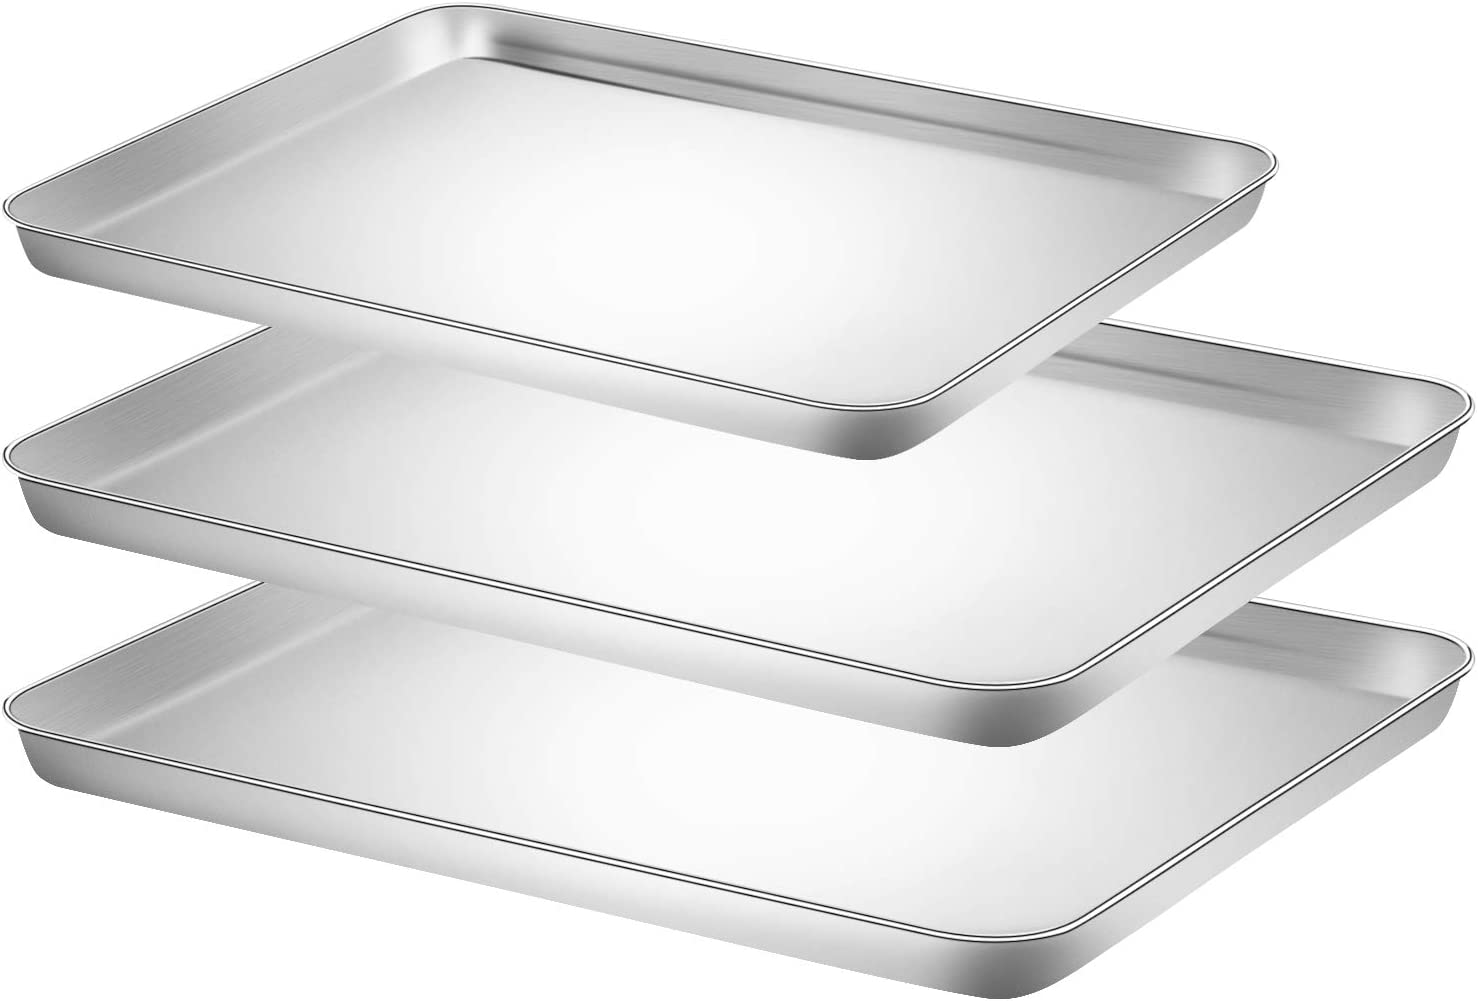 Baking Sheets, Set of 3 Baking Pans, Stainless Steel Cookie Sheets, Toaster Oven Tray Pans